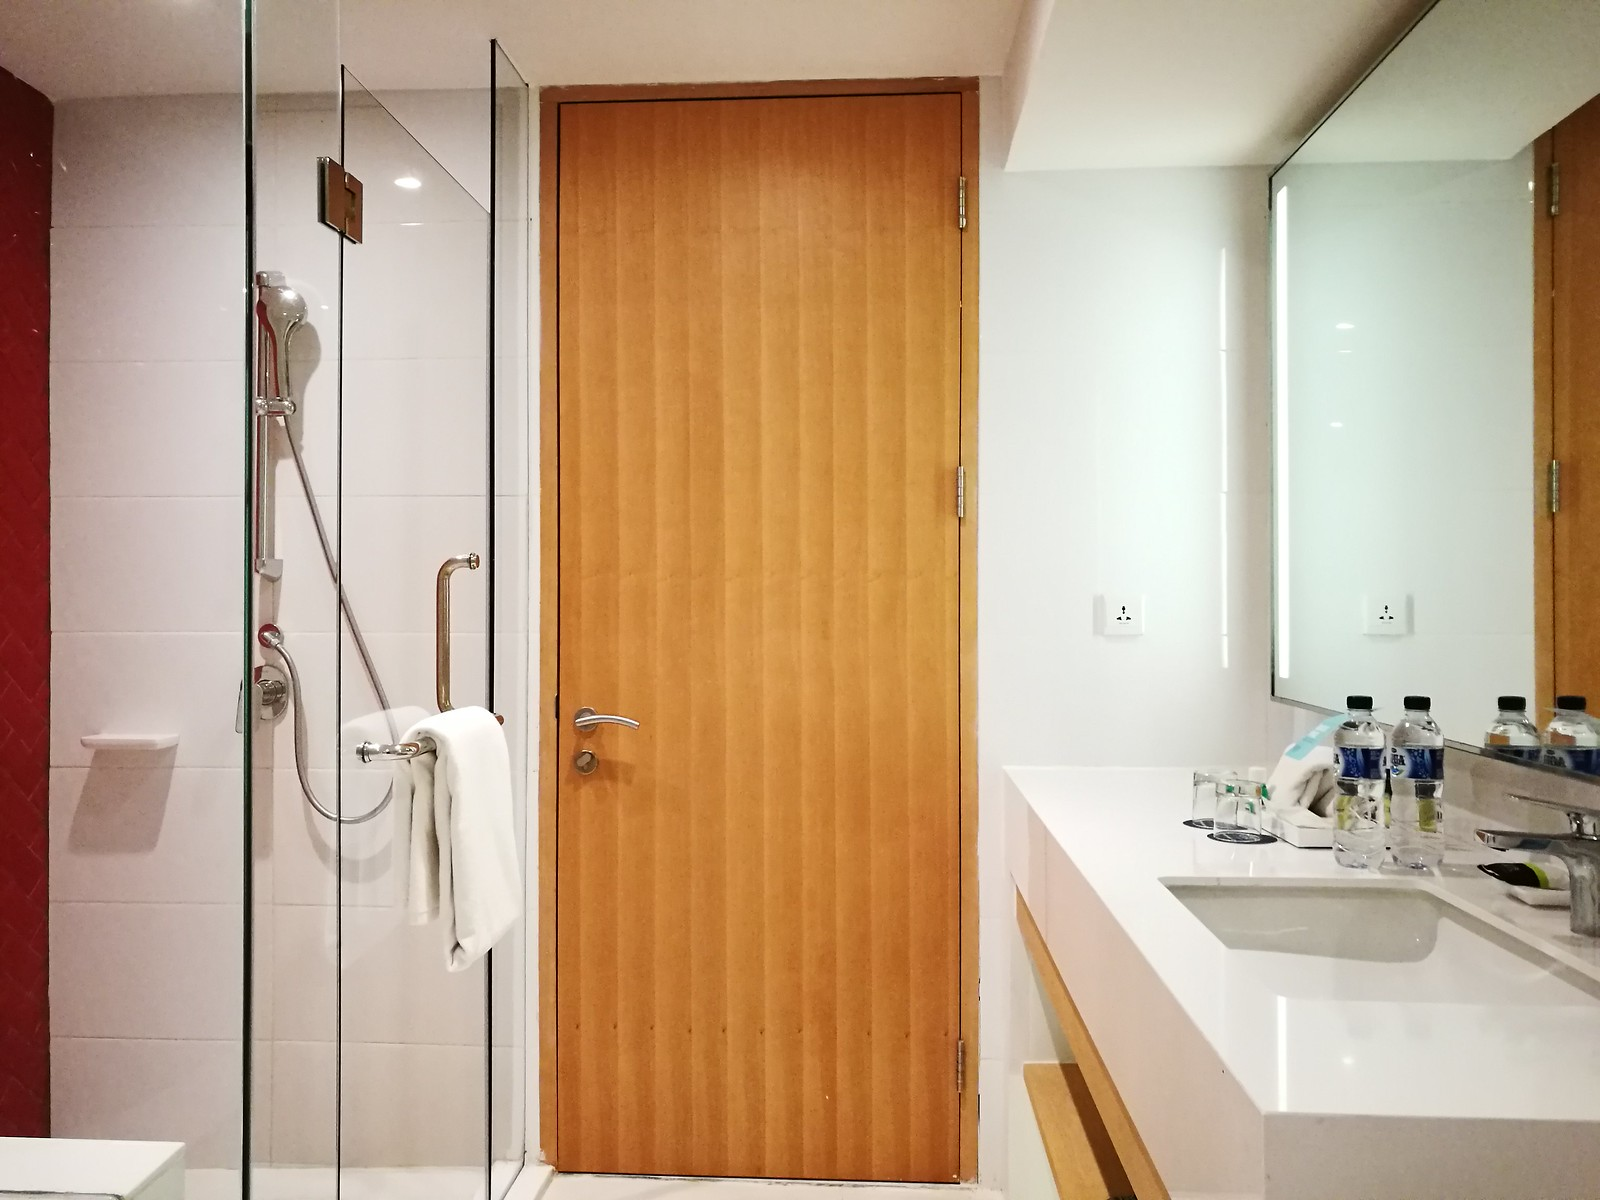 Suite bathroom interior